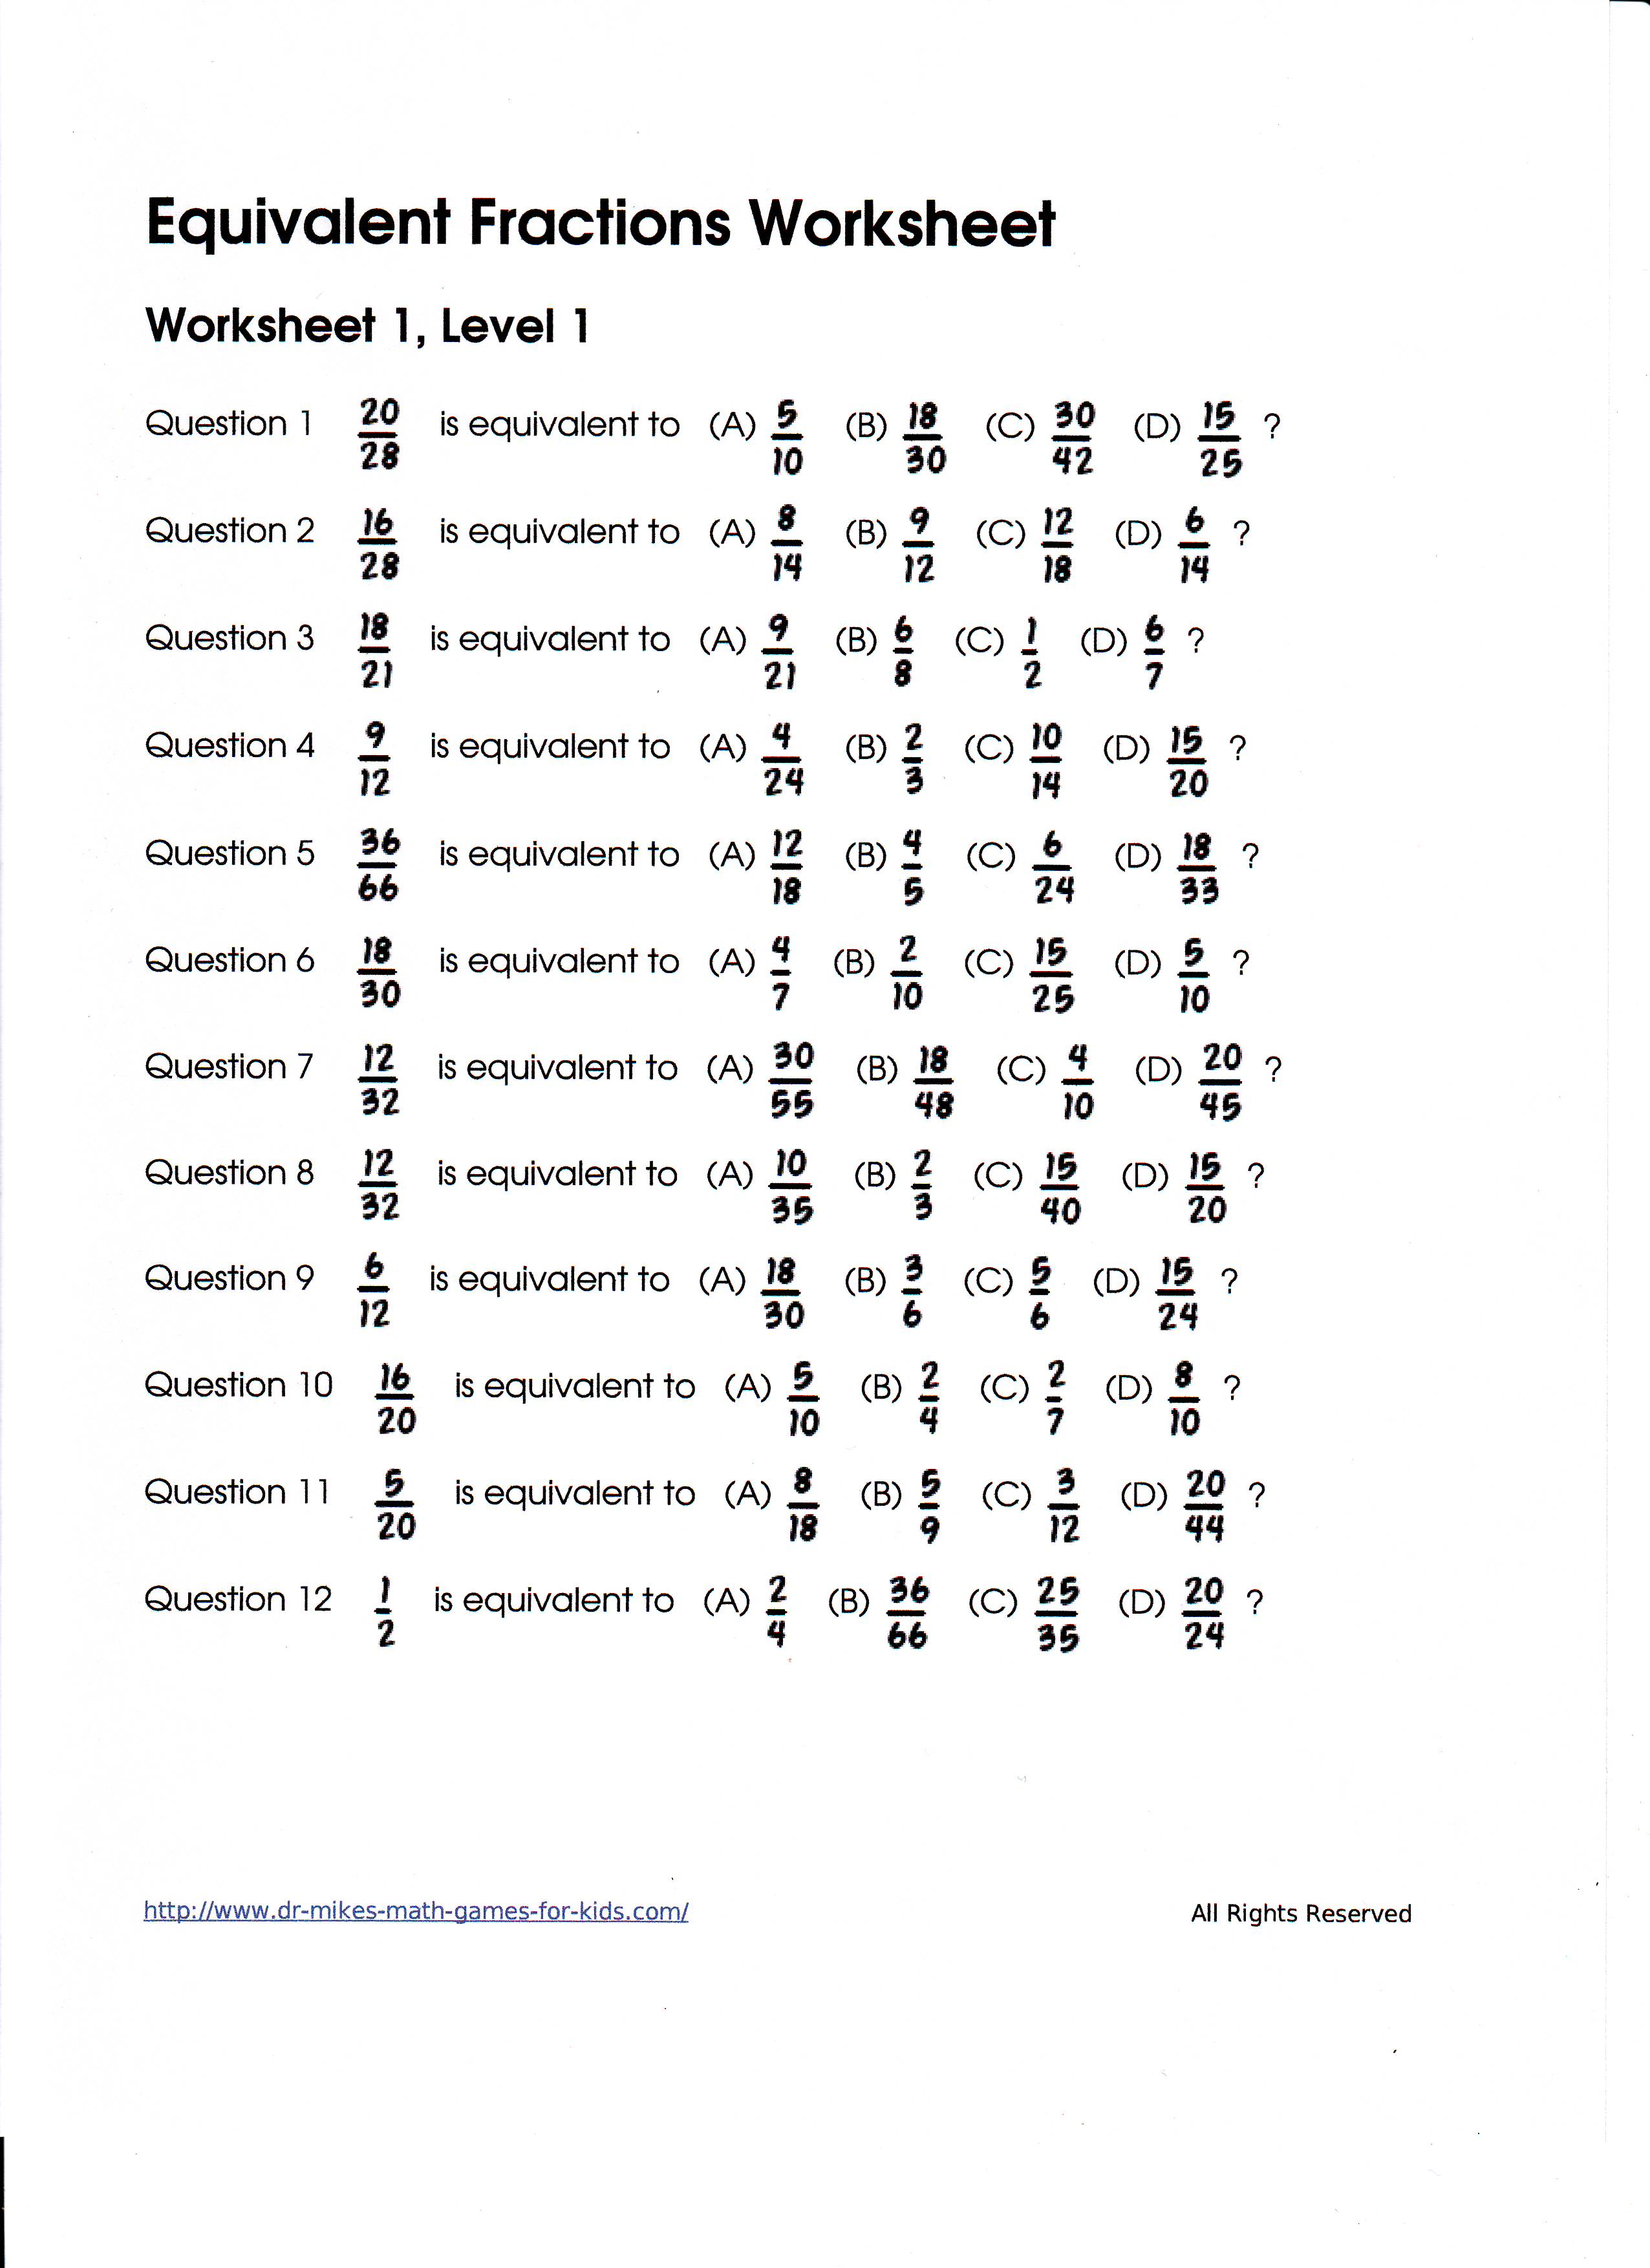 Tazewellmath Licensed For Non Commercial Use Only Unit